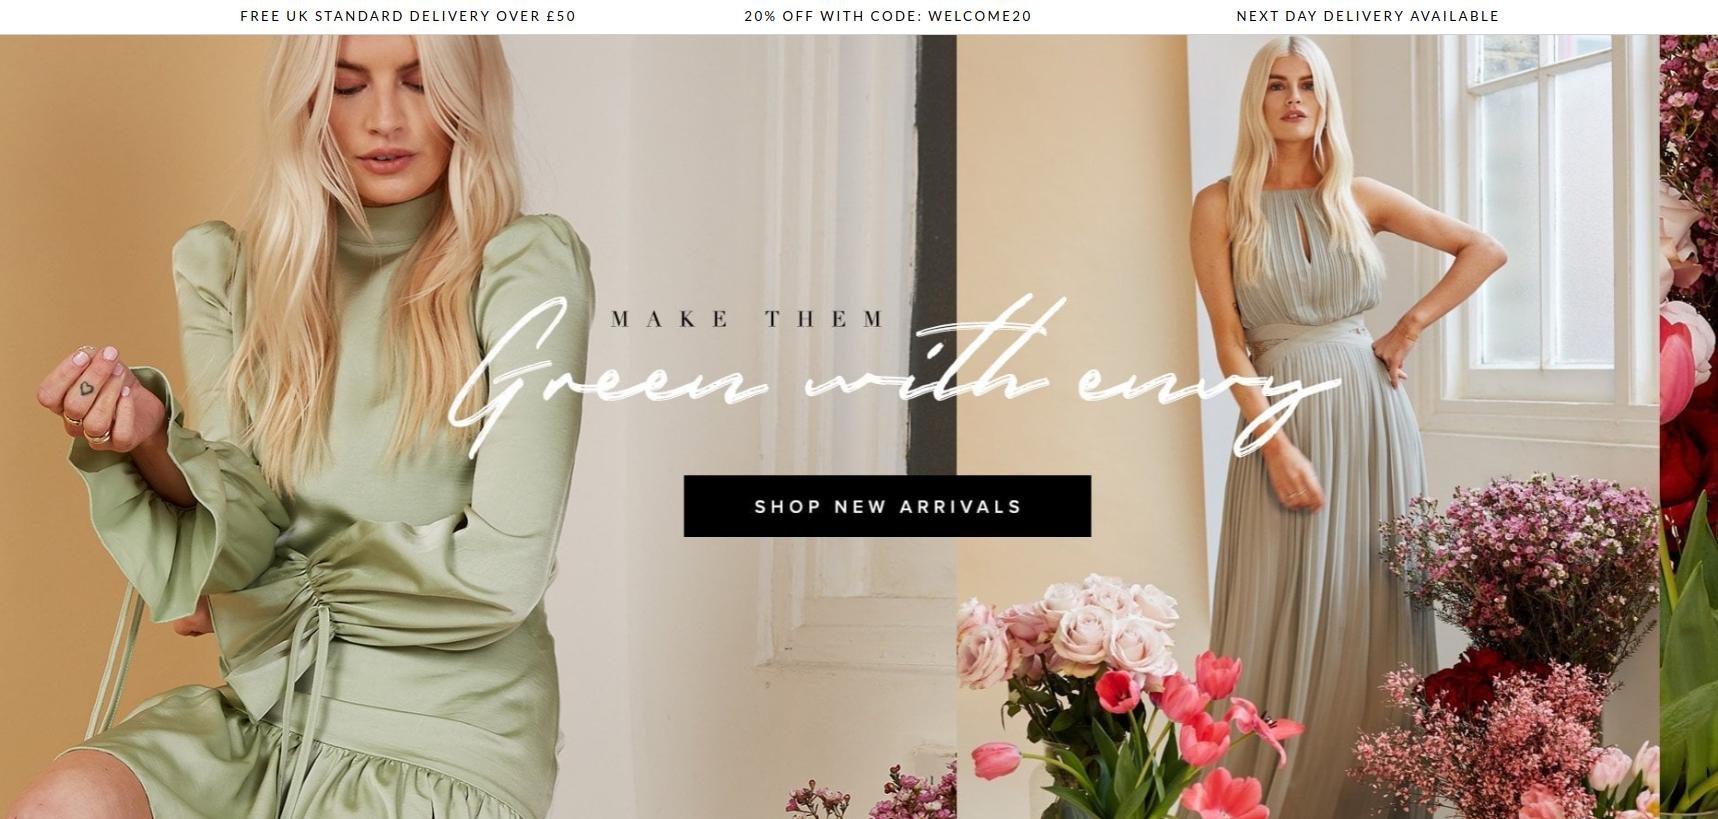 Little Mistress: 20% off women's dresses and clothing